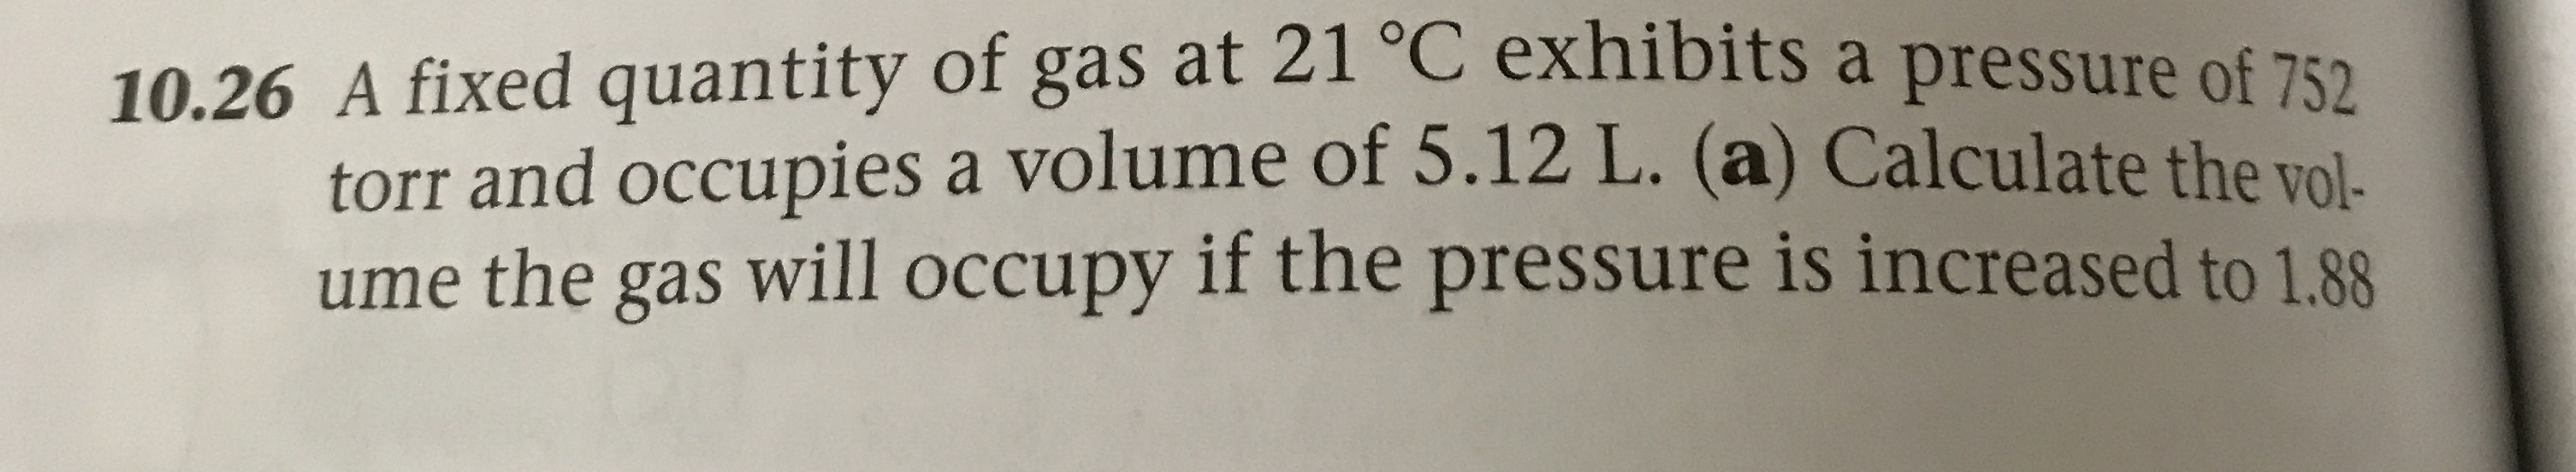 10.26 A fixed quantity of gas at 21 C exhibits a pressure of 752 torr and occupies a volume of 5.12 L. (a) Calculate the vol- ume the gas will occupy if the pressure is increased to 1.88